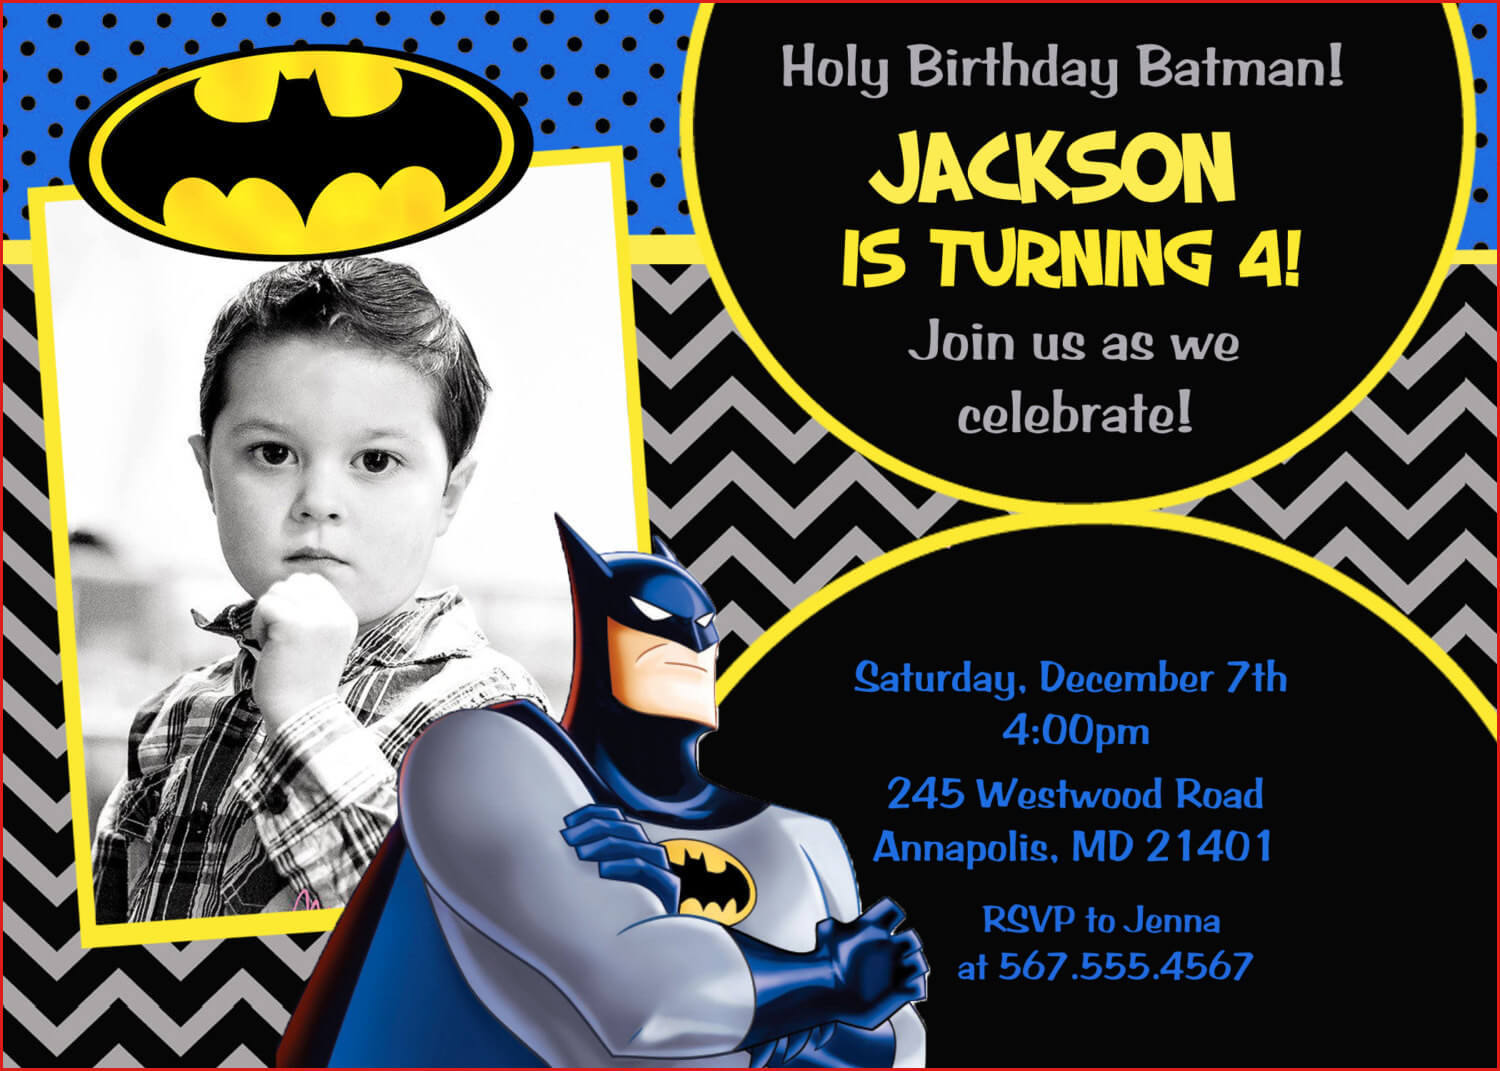 Batman Birthday Card Template Batman Superhero Birthday Throughout Batman Birthday Card Template